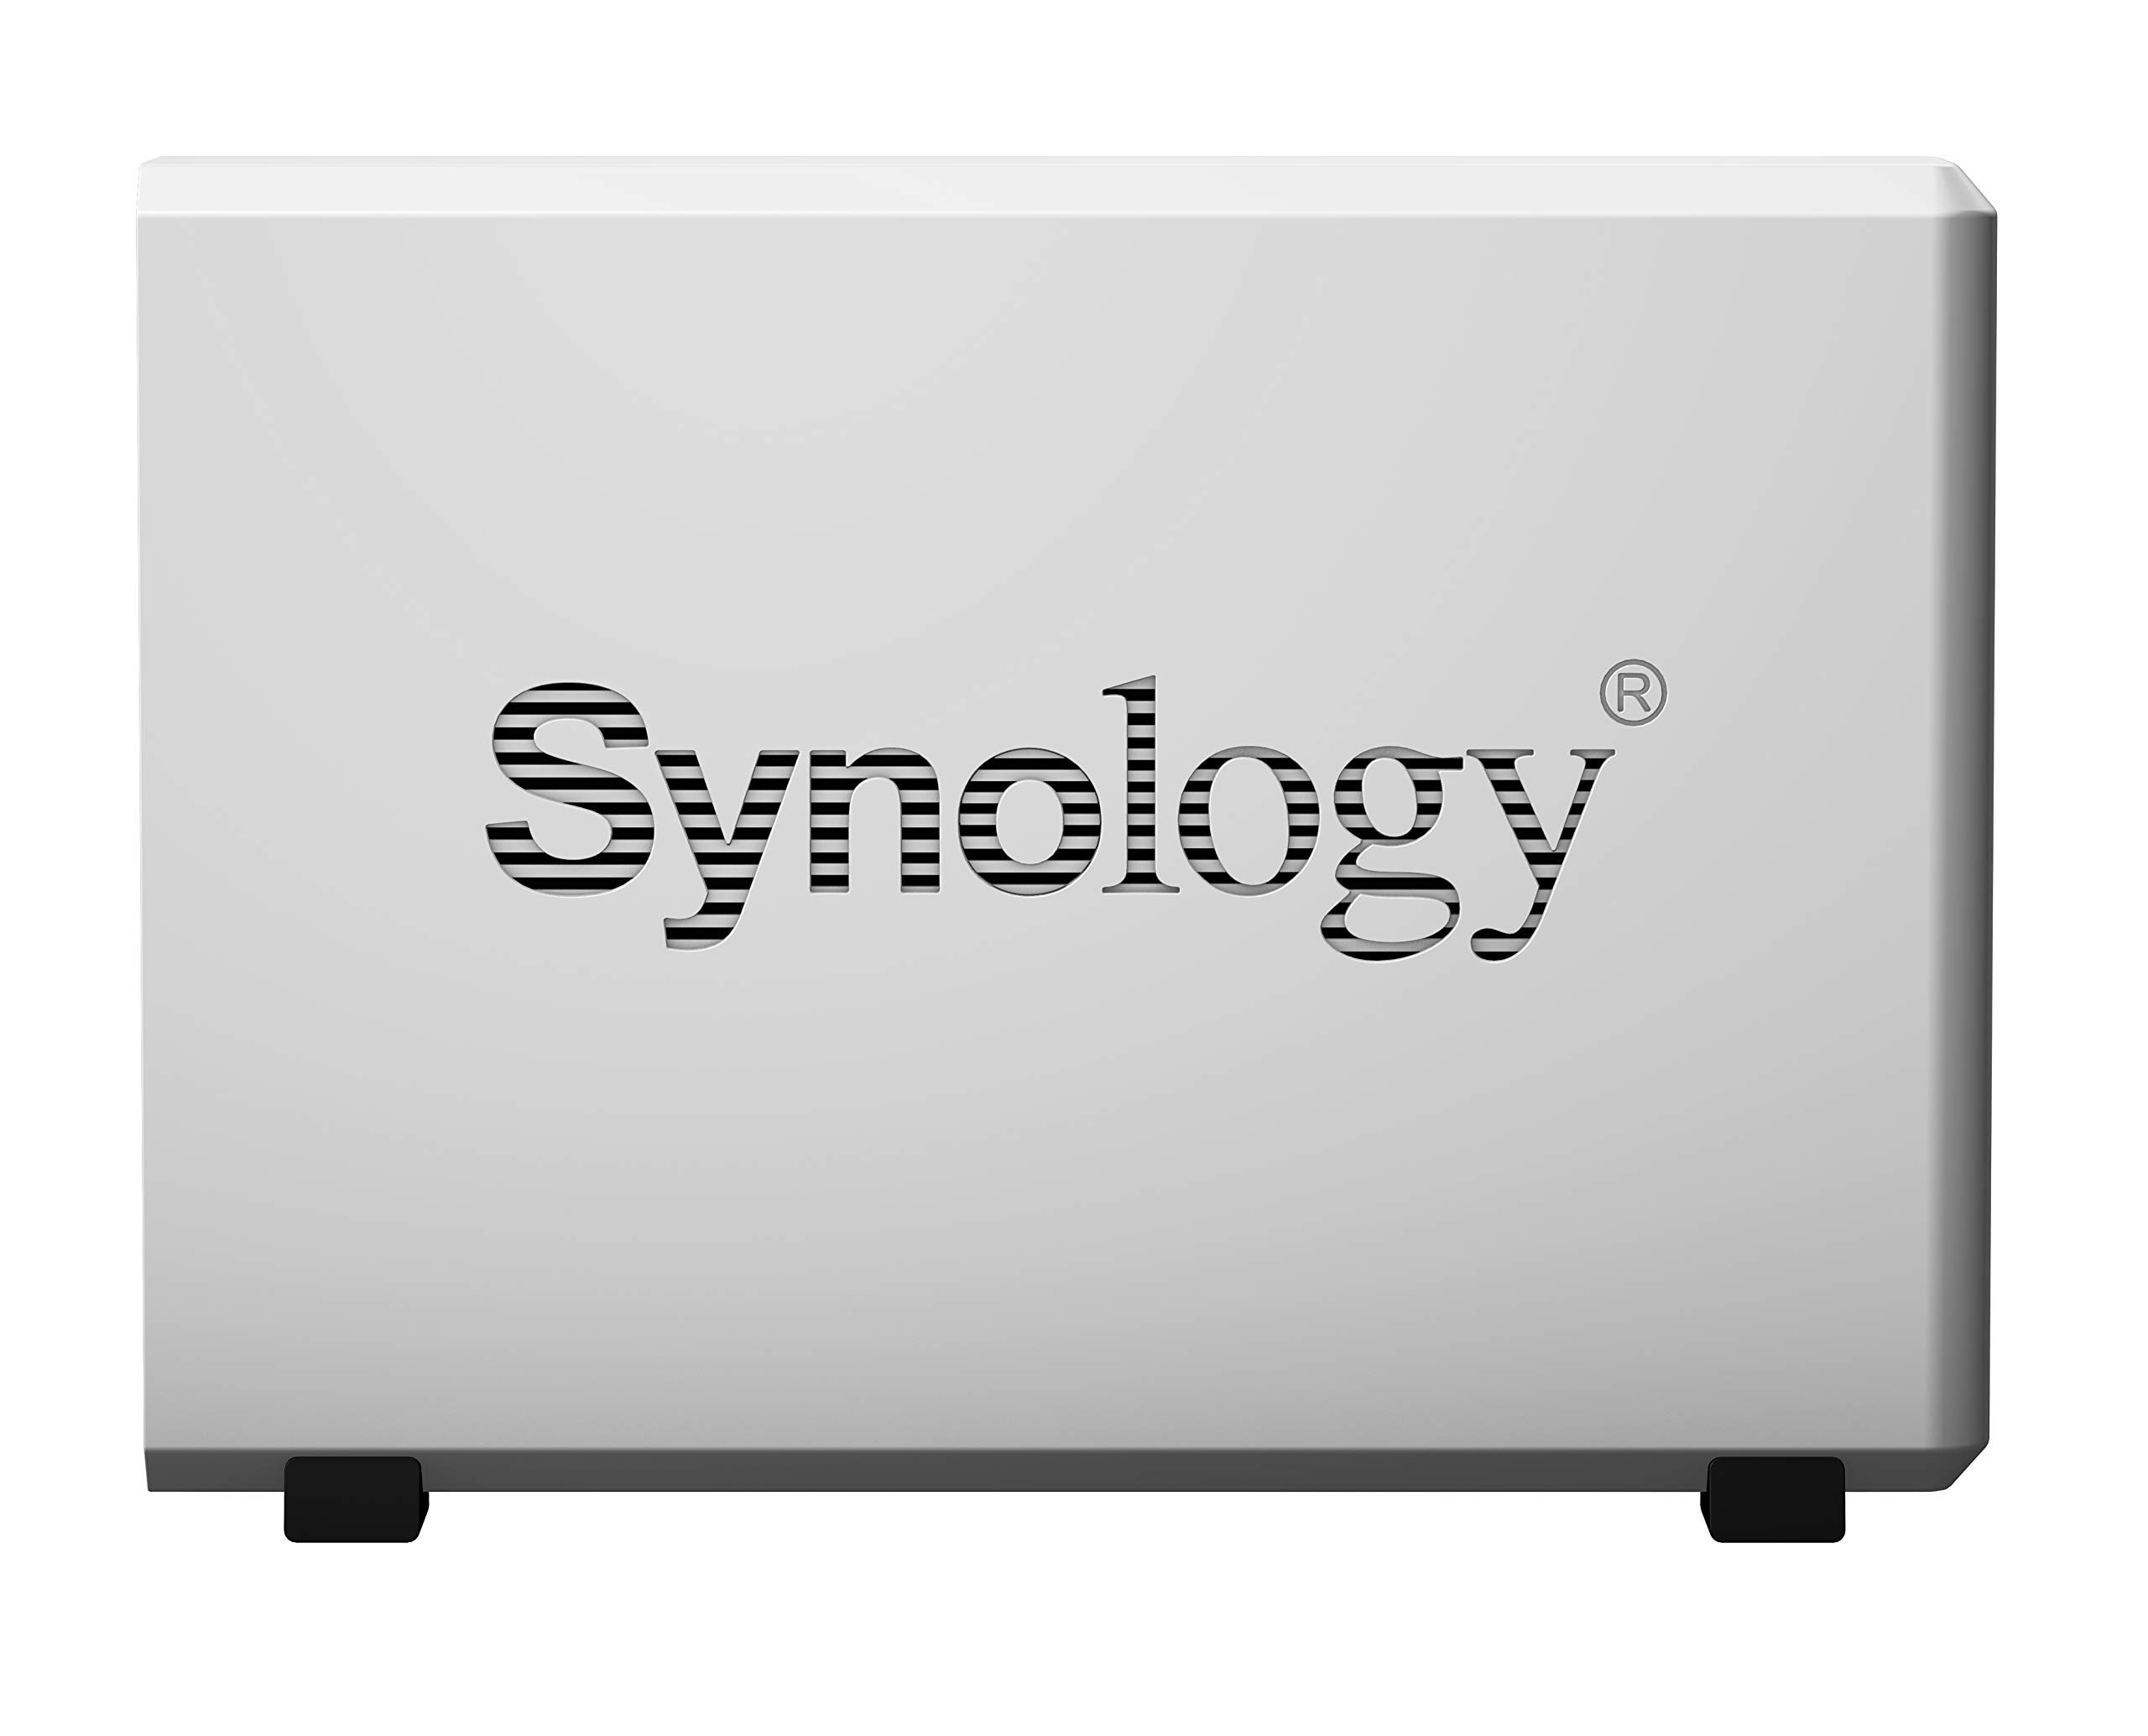 Synology Disk Station 2-Bay Diskless Network Attached Storage (DS216se) (Certified Refurbished) 3 This Certified Refurbished product is tested and certified to look and work like new. The refurbishing process includes functionality testing, basic cleaning, inspection, and repackaging. The product ships with all relevant accessories, a minimum 90-day warranty, and may arrive in a generic box. Only select sellers who maintain a high performance bar may offer Certified Refurbished products on Amazon.com CPU Model : Marvell Armada 385 88F6820 Noise Level 20.6 dB(A)